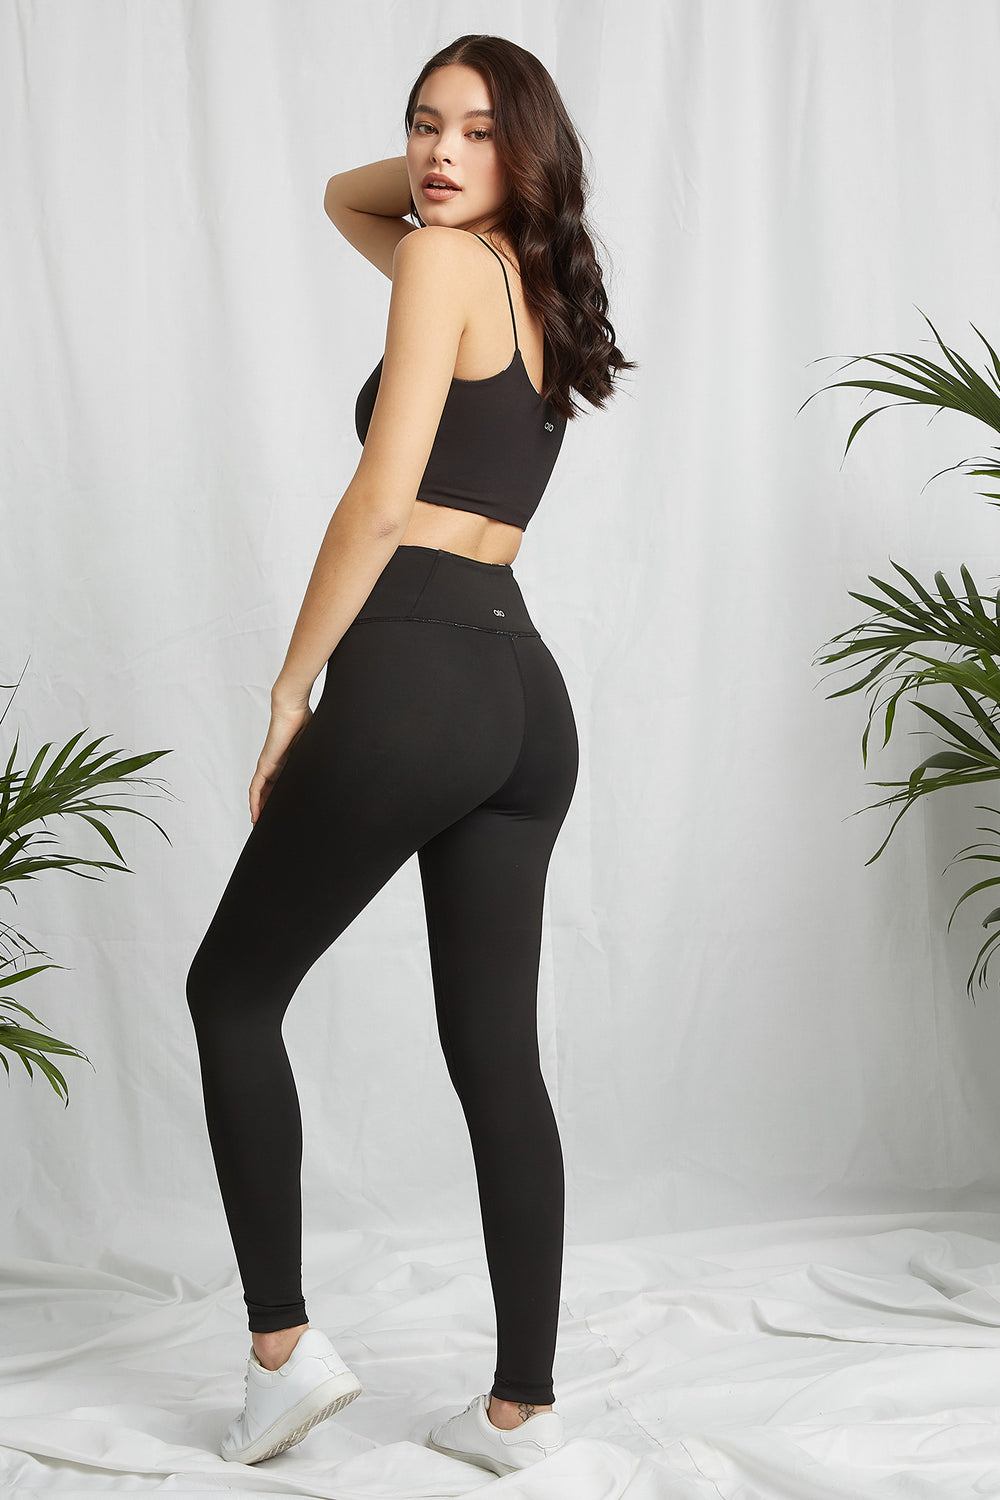 REPREVE® Eco-Friendly Recycled Polyester Reversable Active Legging Black